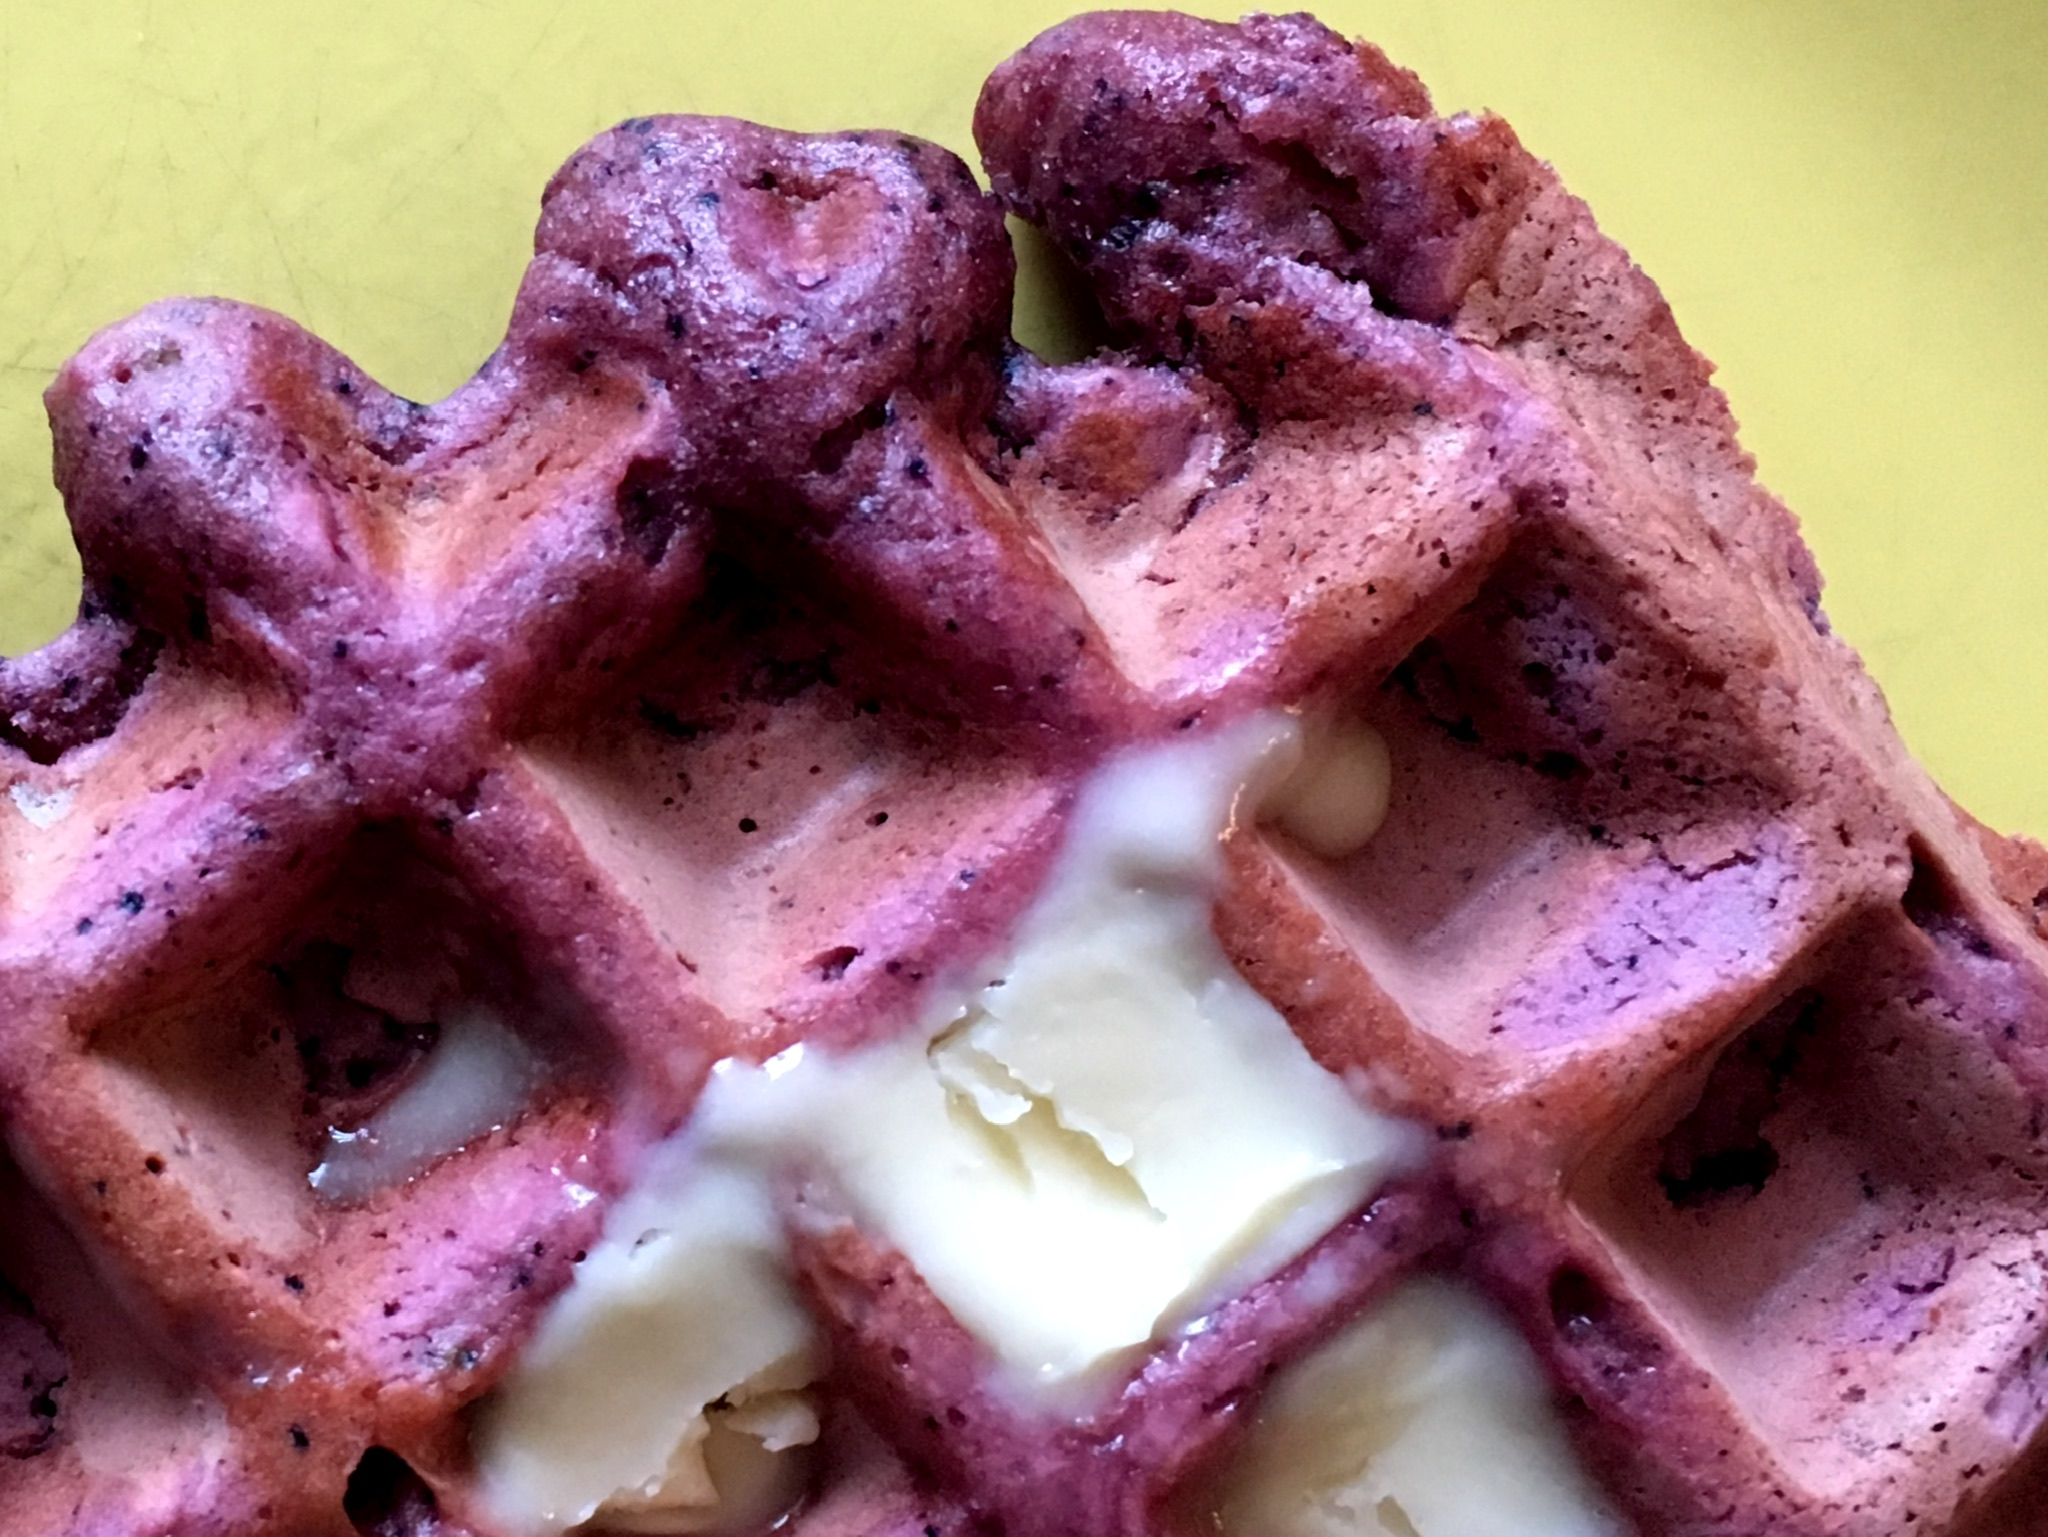 Blueberry-beet waffle topped with vegan butter